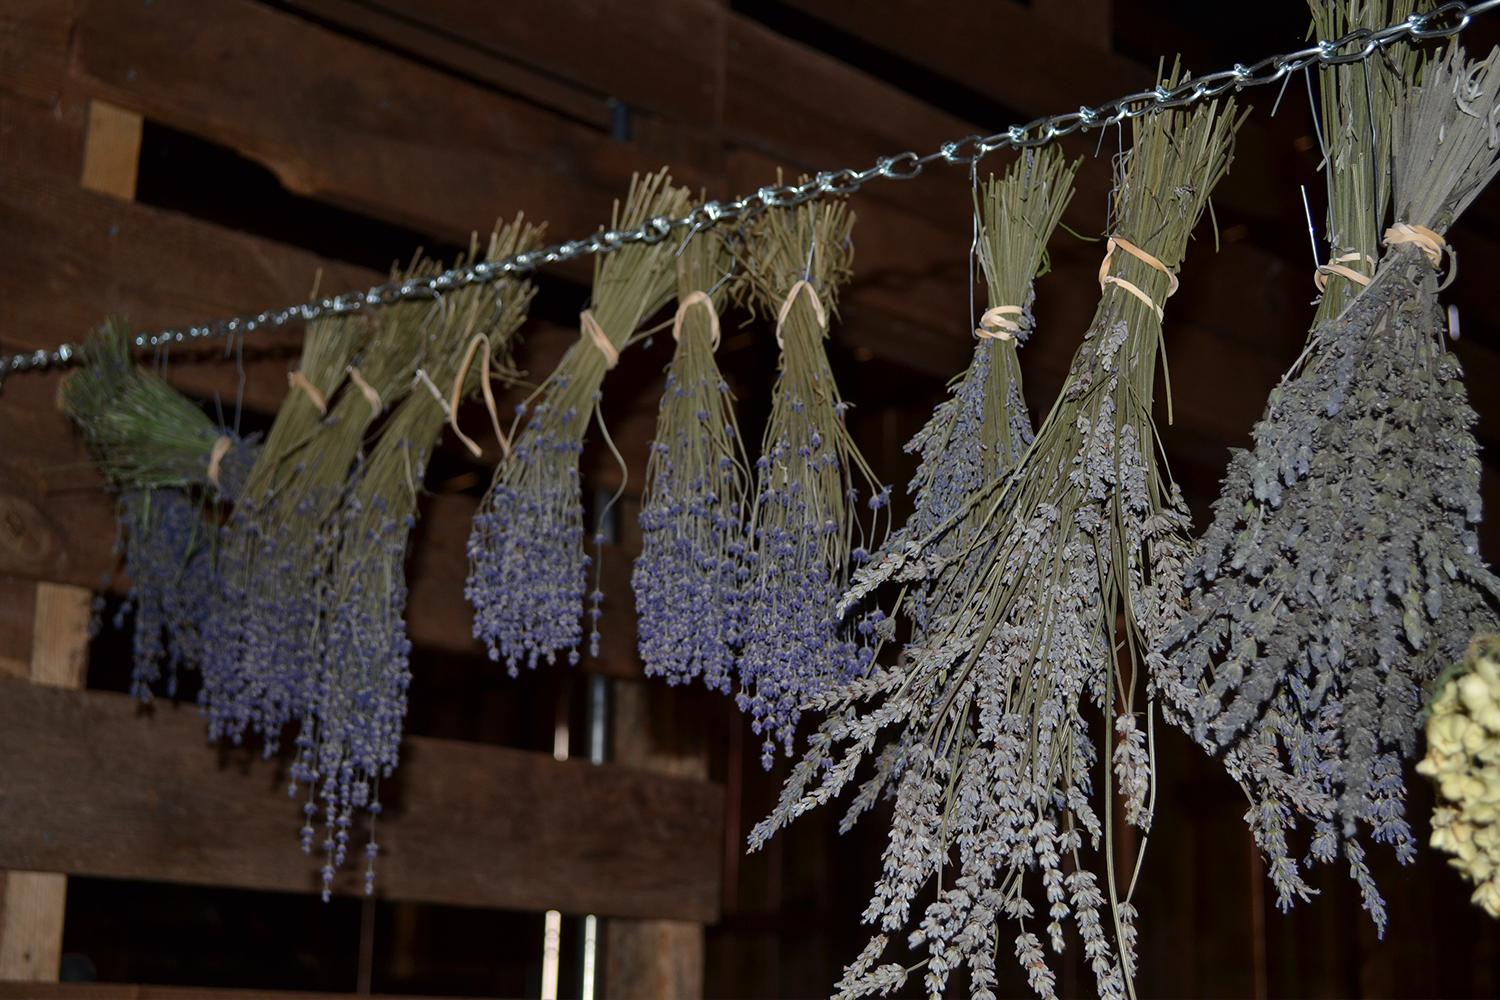 drying-lavender-at-hauser-creek-farm-mocksville-nc-DSC_0557.jpg